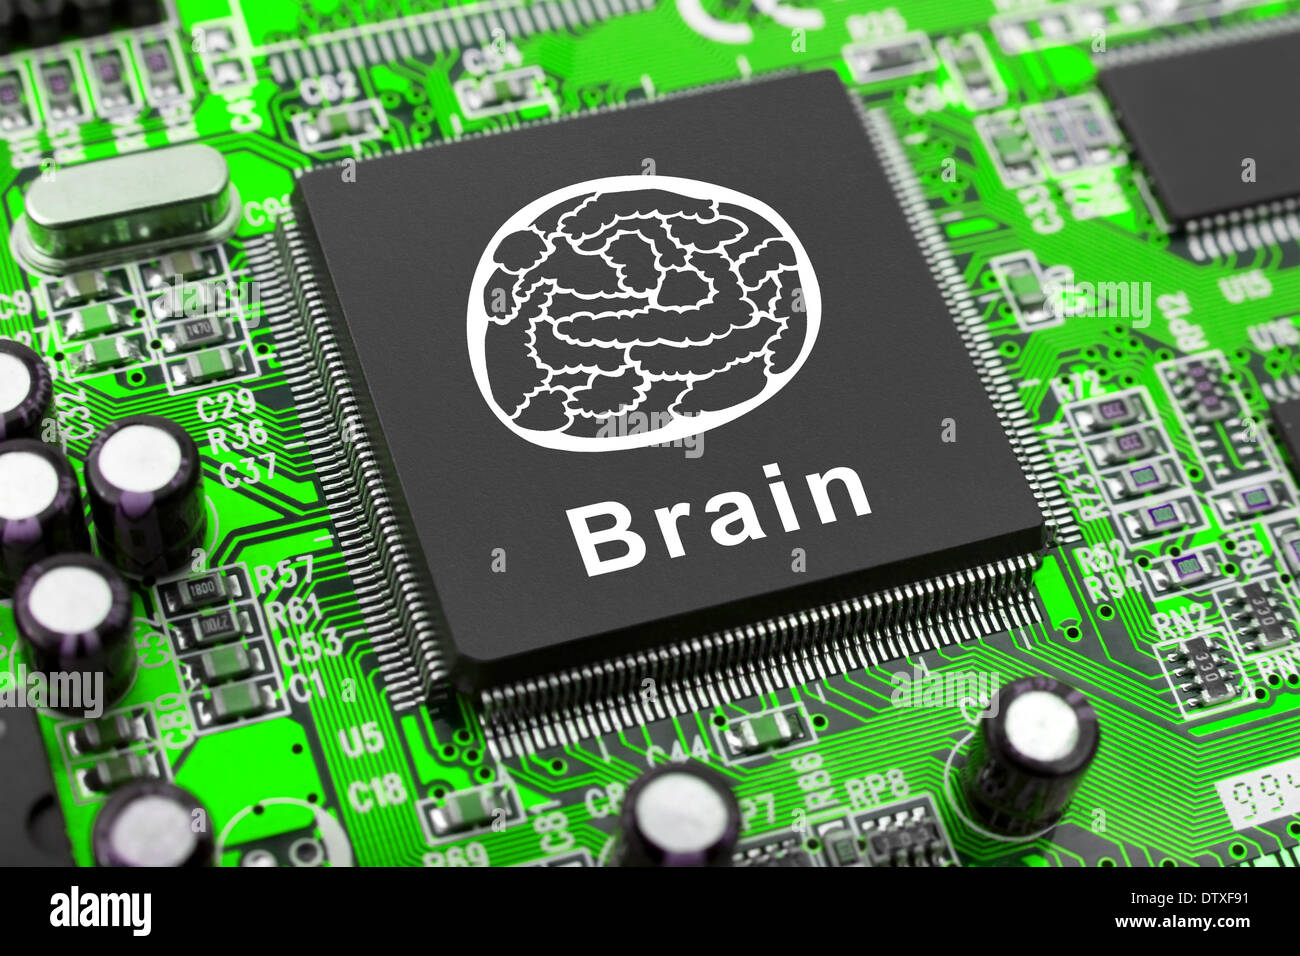 Brain Symbol On Computer Chip Stock Photo 66965613 Alamy Electronic Circuit Symbols